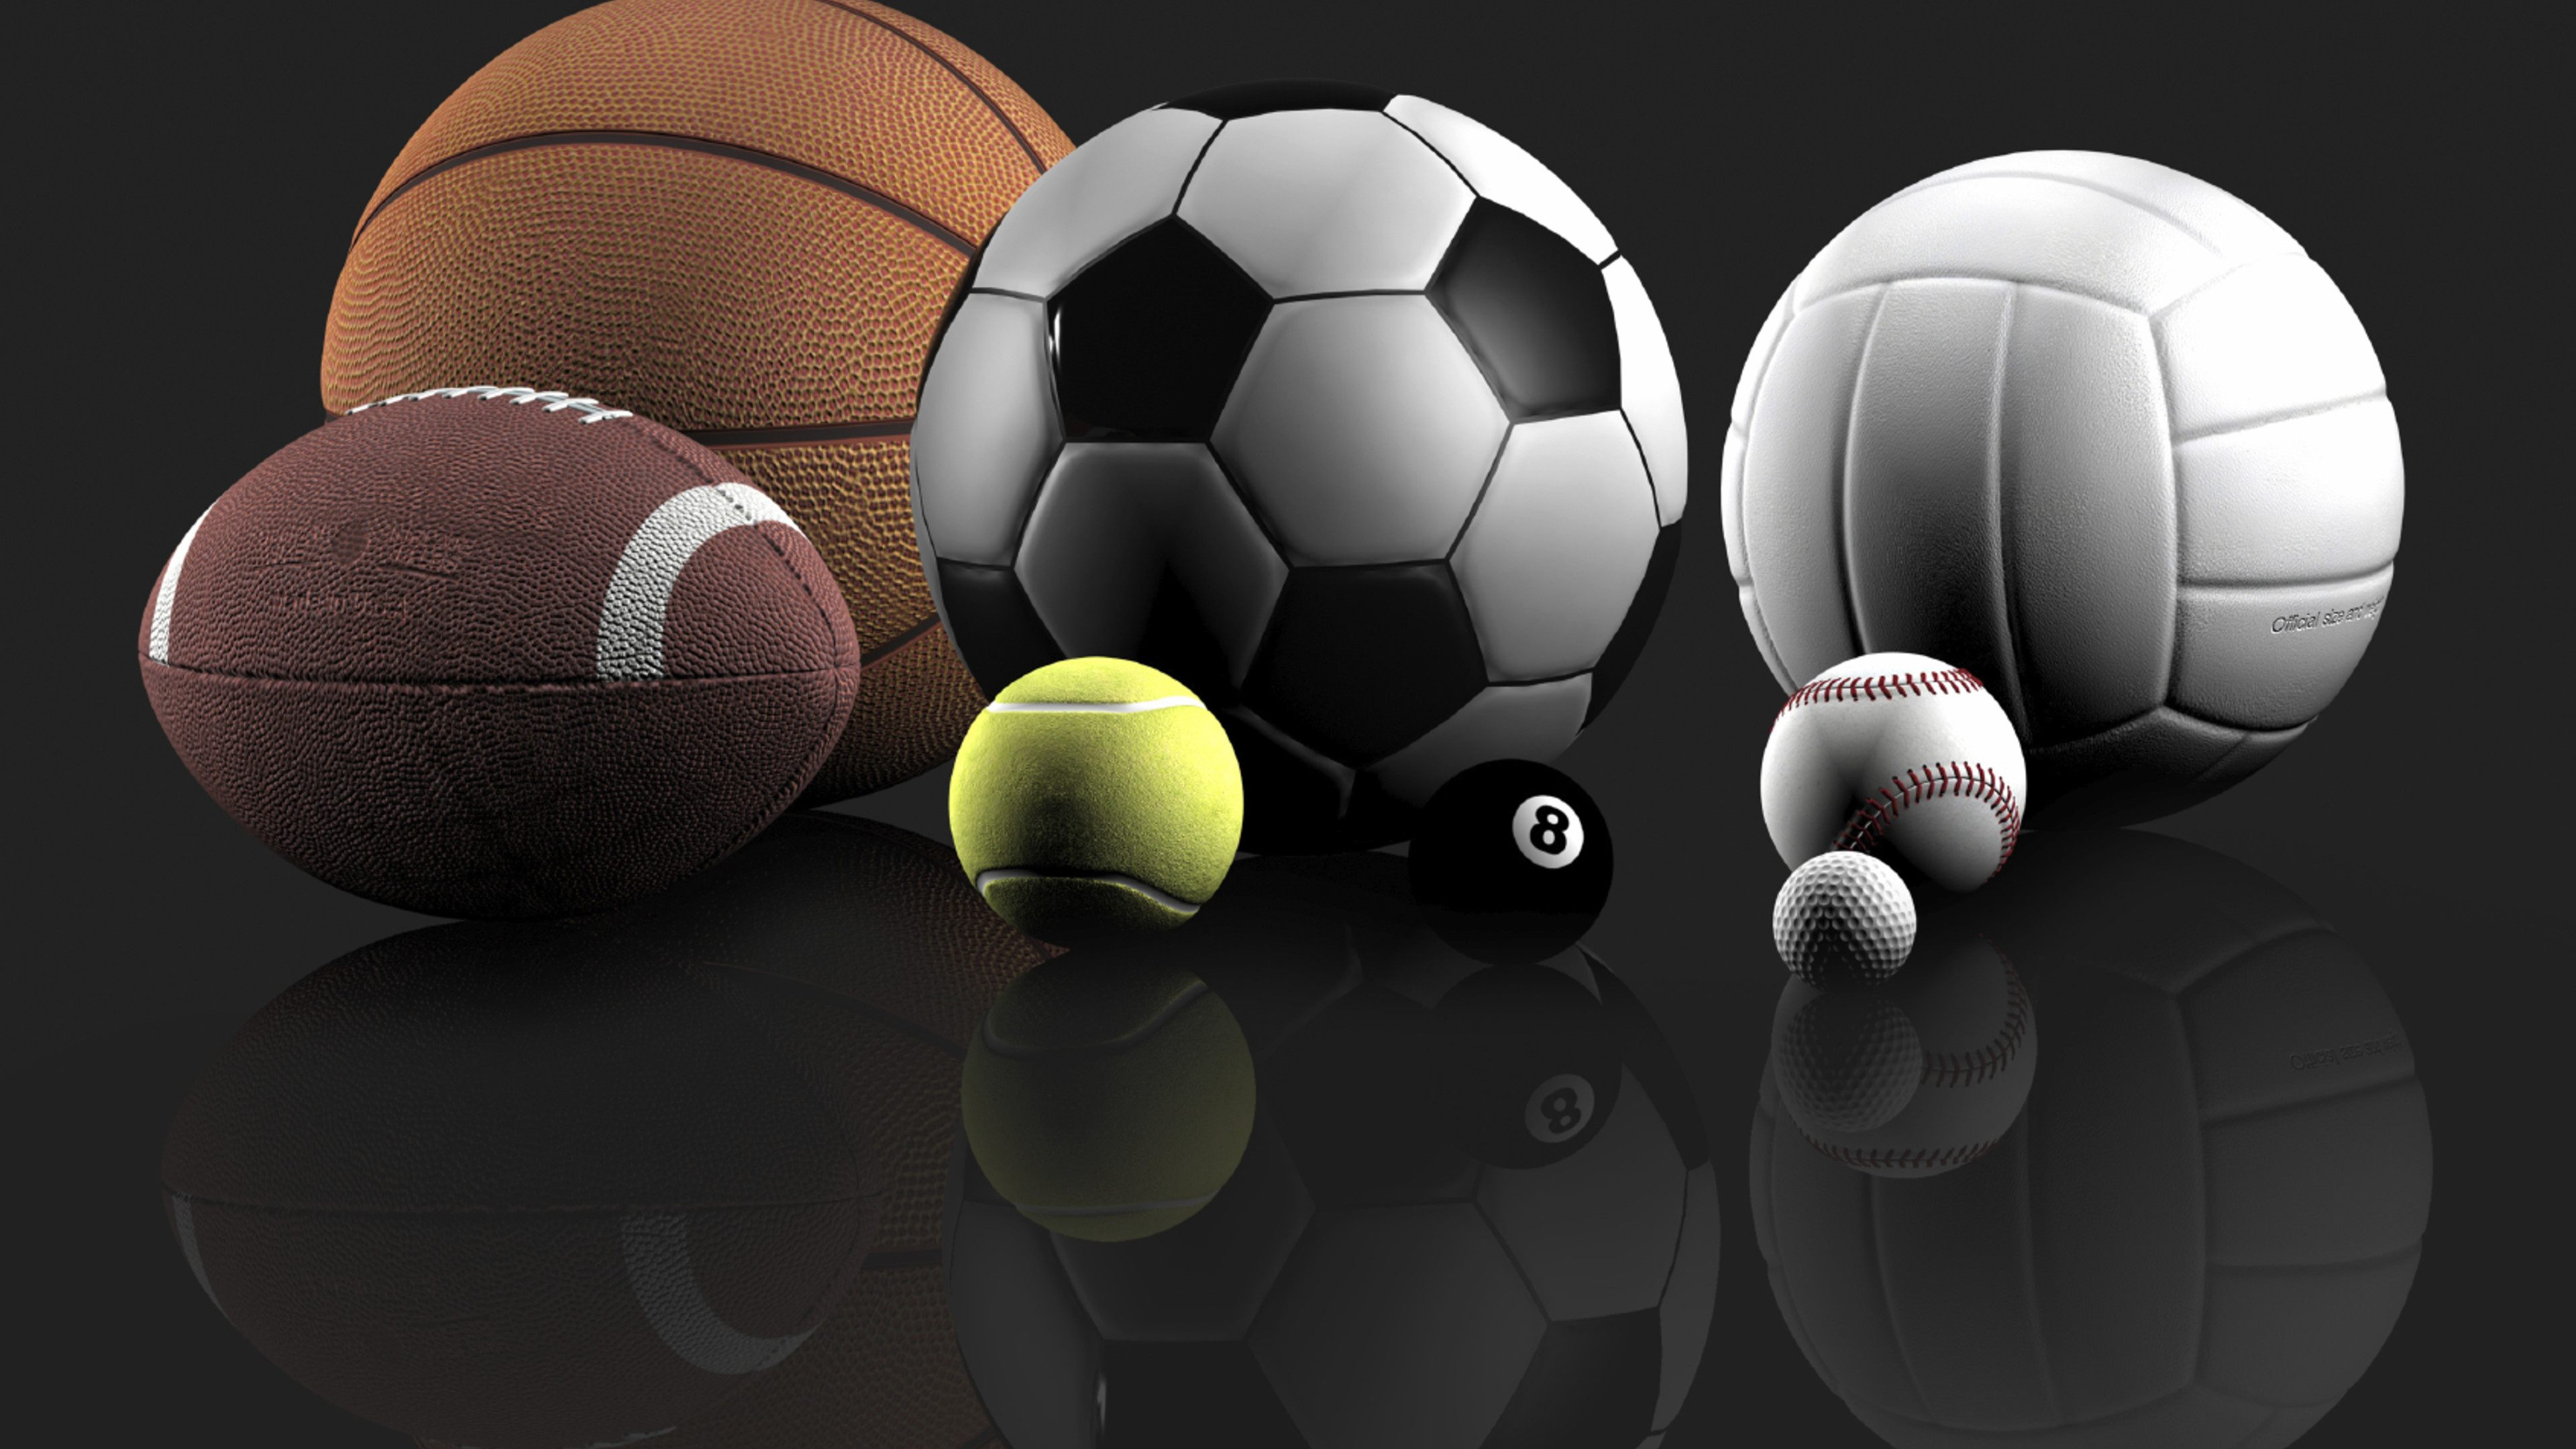 3840x2160 - Sports Wallpapers 3